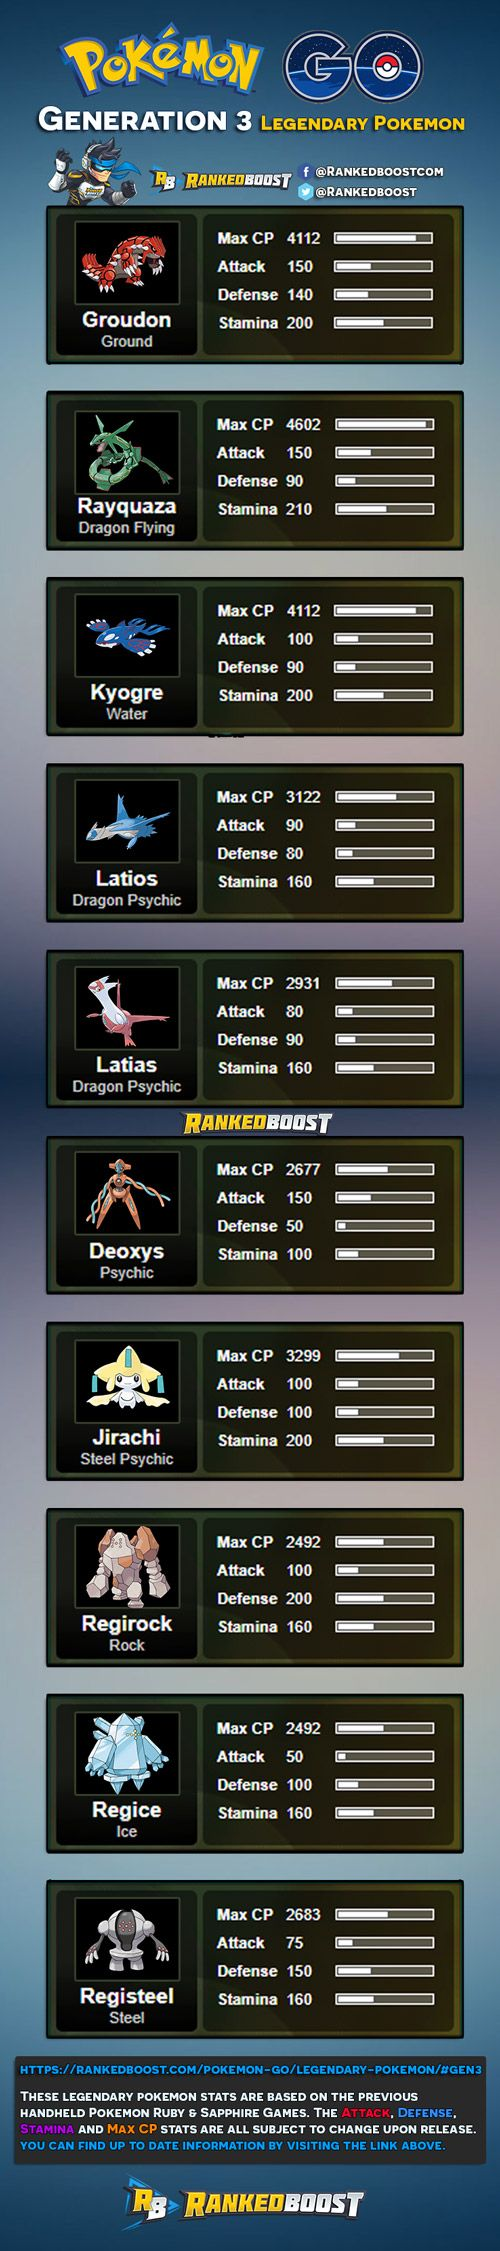 Pokemon GO GEN 3 Legendary Pokemon - Attack, Defense, Stamina and MAX CP Stats are based on the handheld ruby and sapphire pokemon games.